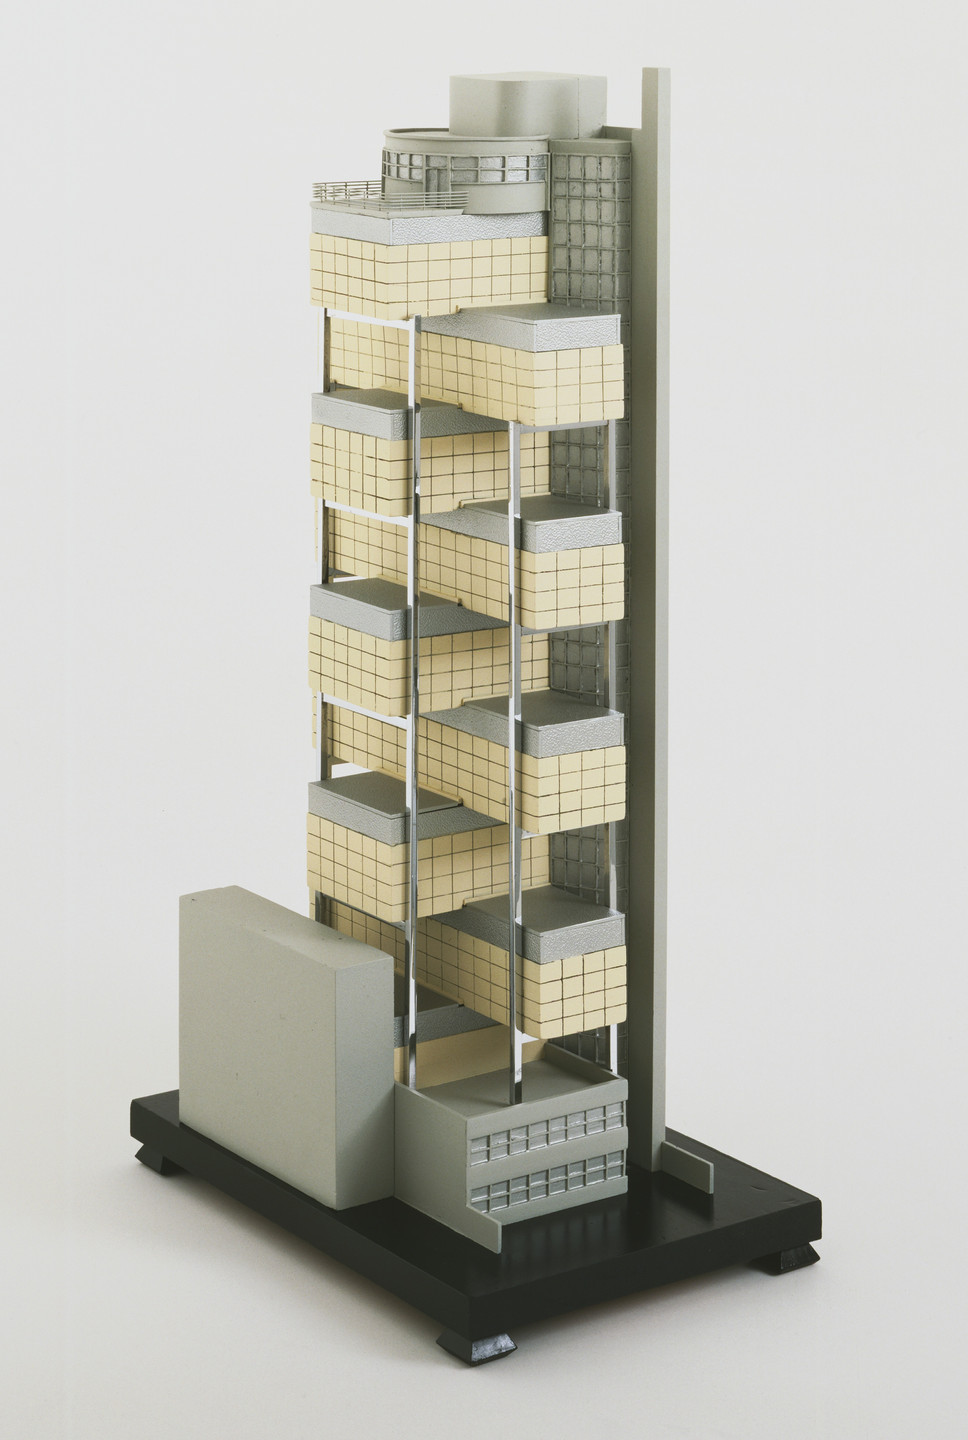 George Howe, William Lescaze. The Museum of Modern Art, New York (Scheme 4, First Variation). 1930